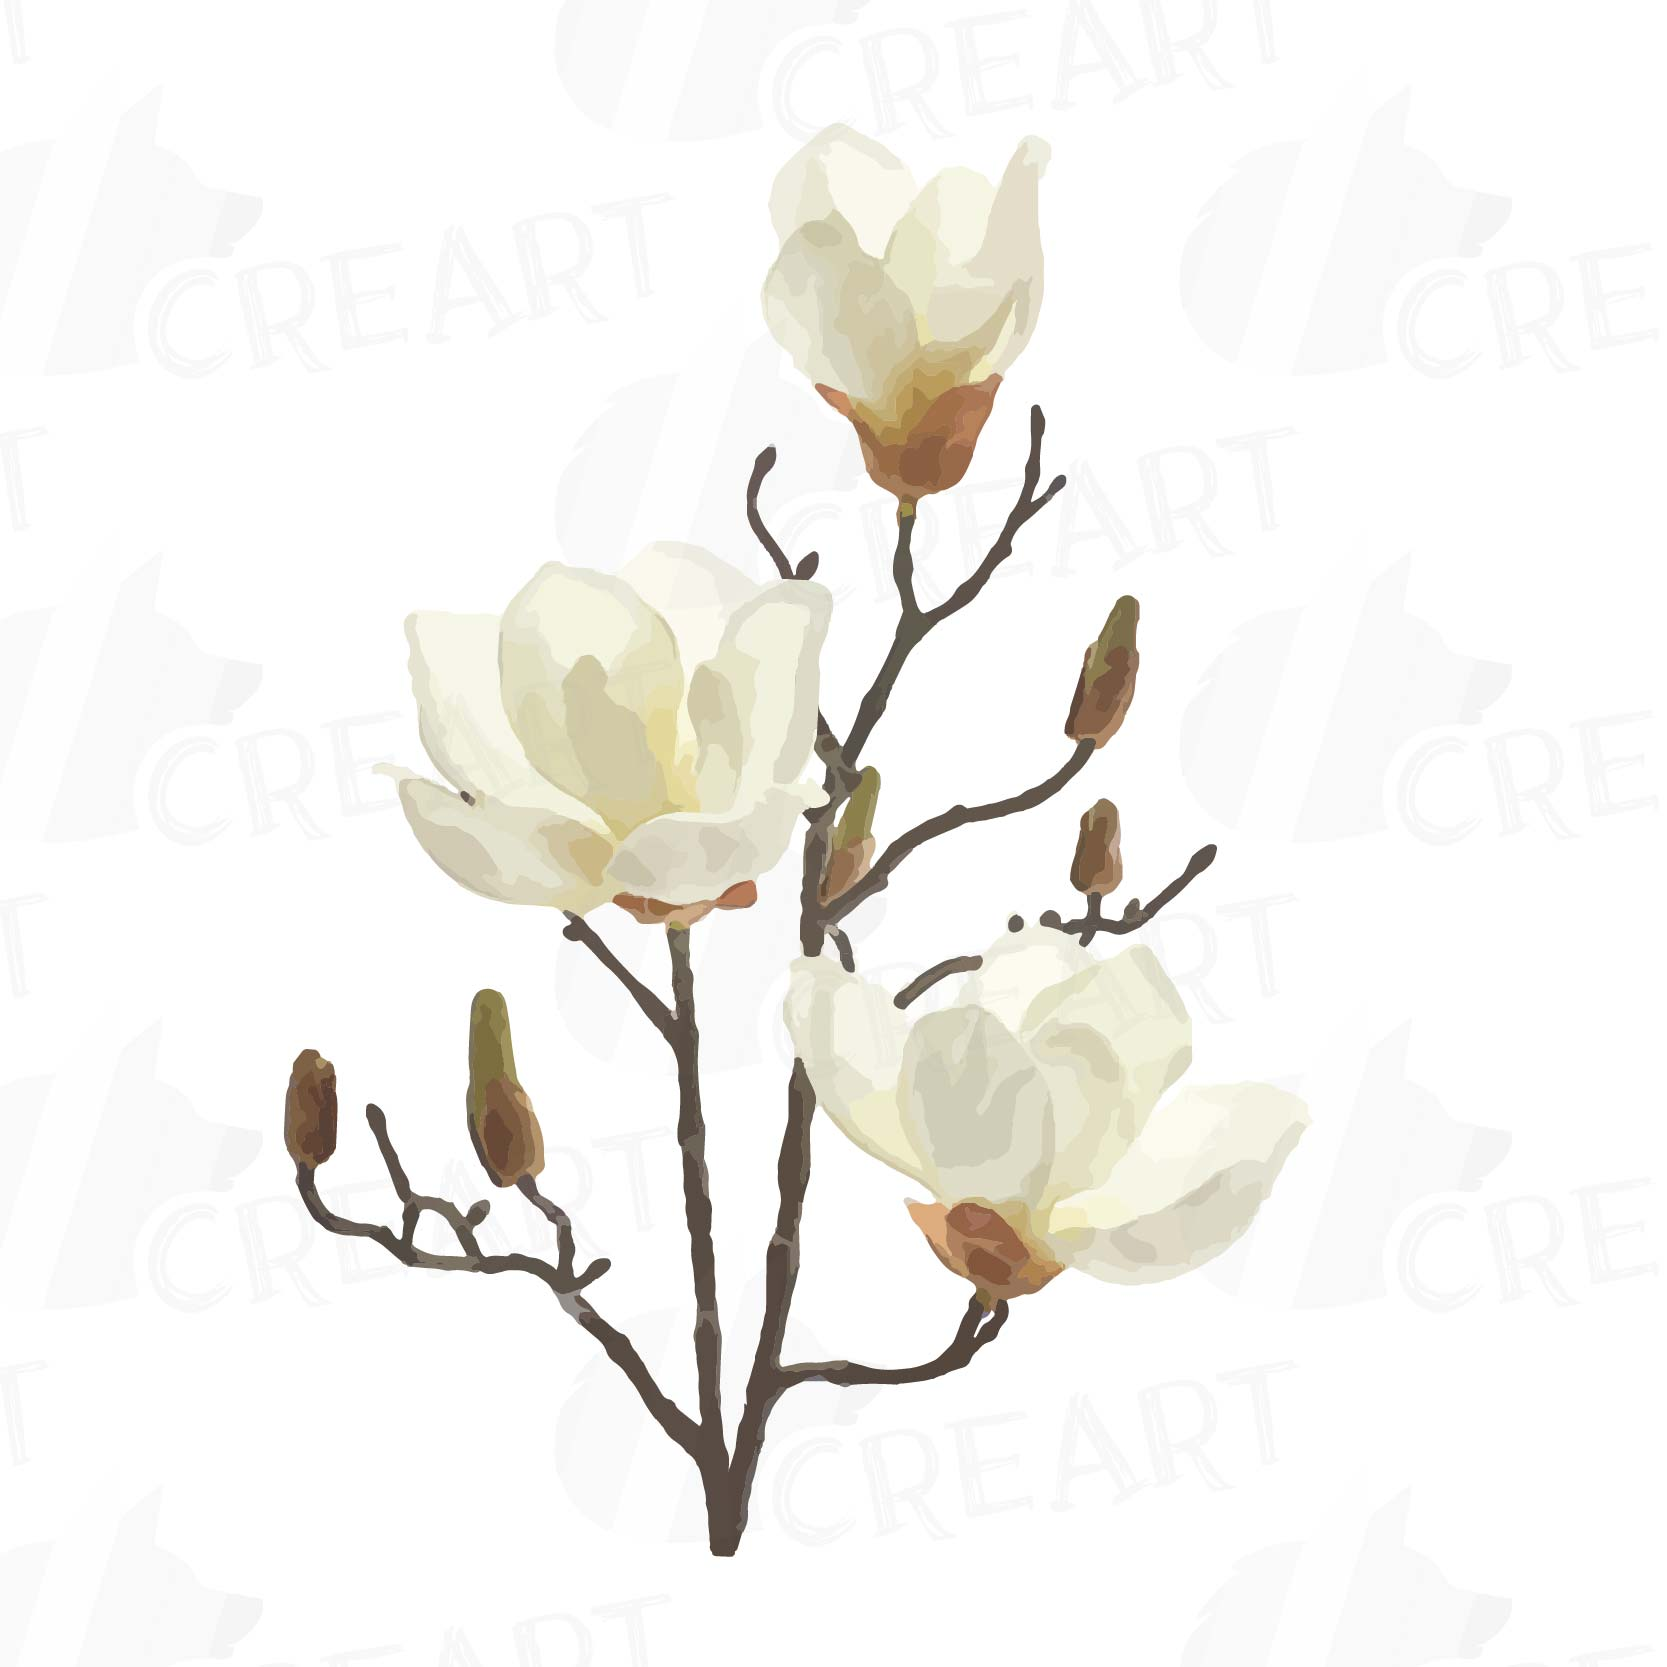 Watercolor White Magnolia Flowers And Leafs Clip Art Pack Magnolias